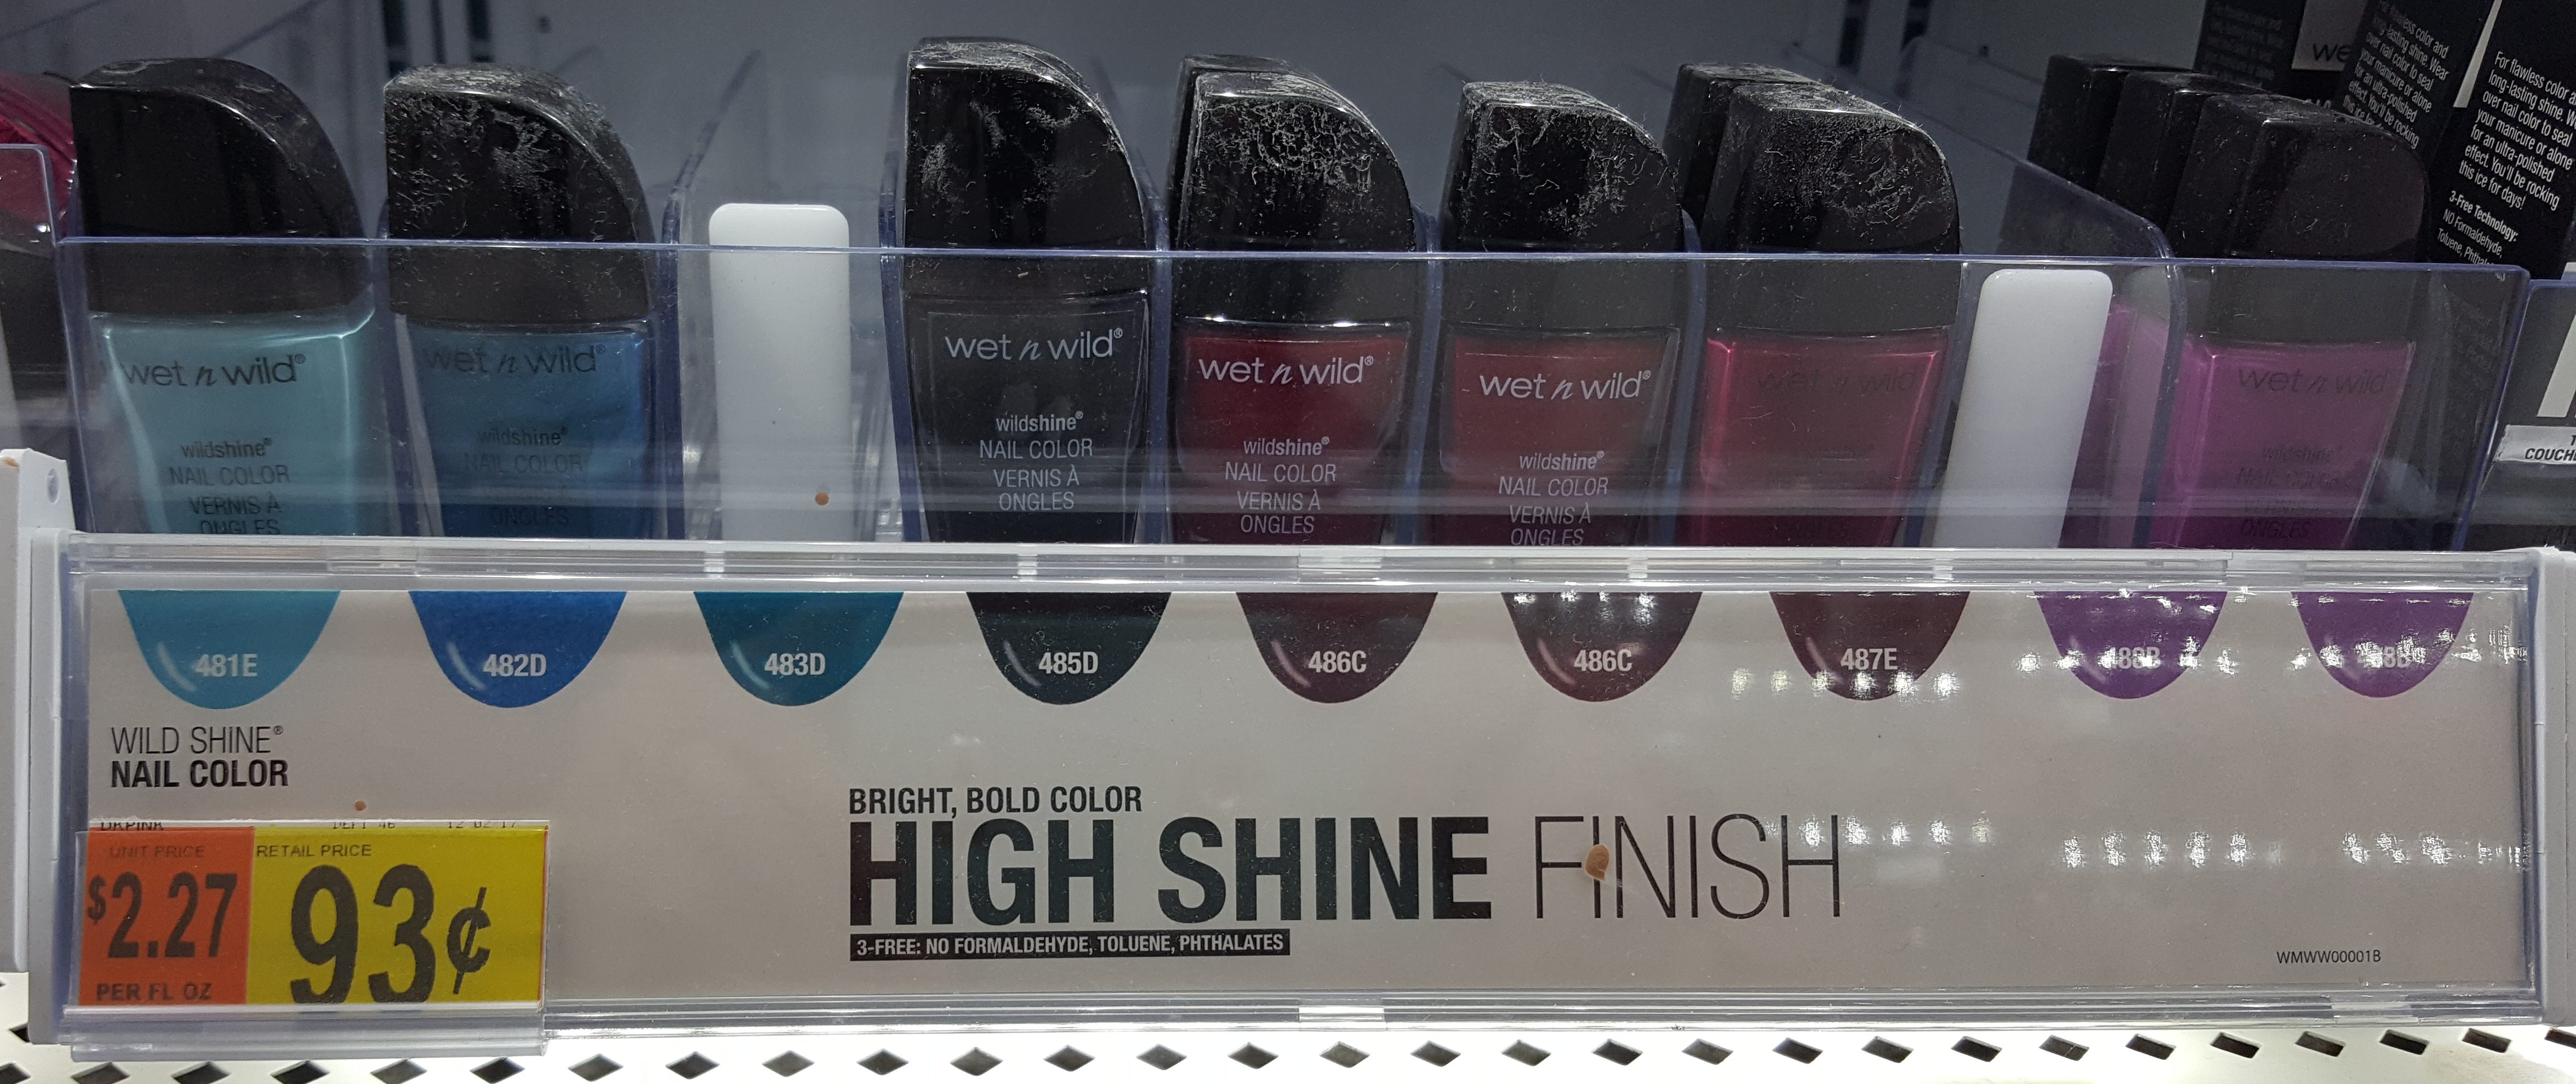 wet n wild eyeliner 93 use the 11 any wet n wild product printable coupon found here final cost free select wet n wild